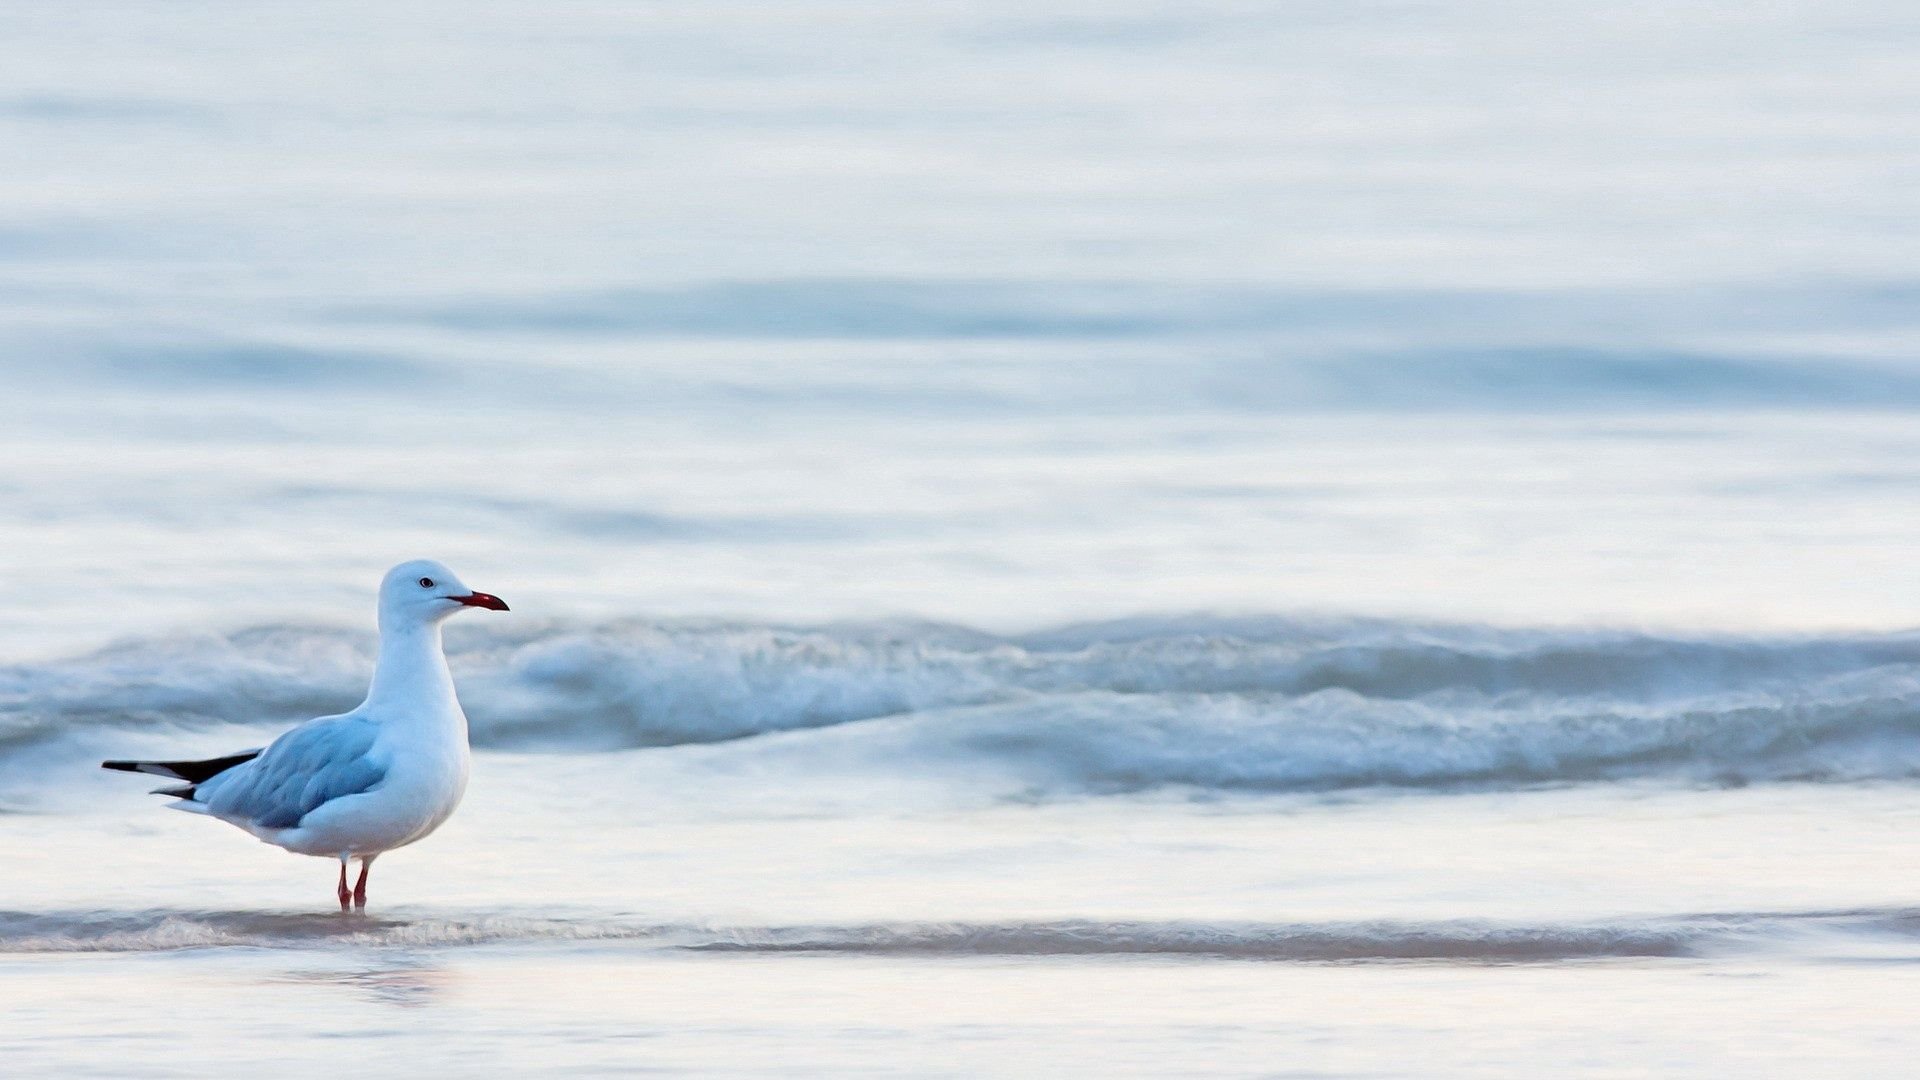 64520 download wallpaper Animals, Gull, Seagull, Bird, Sea, Water screensavers and pictures for free